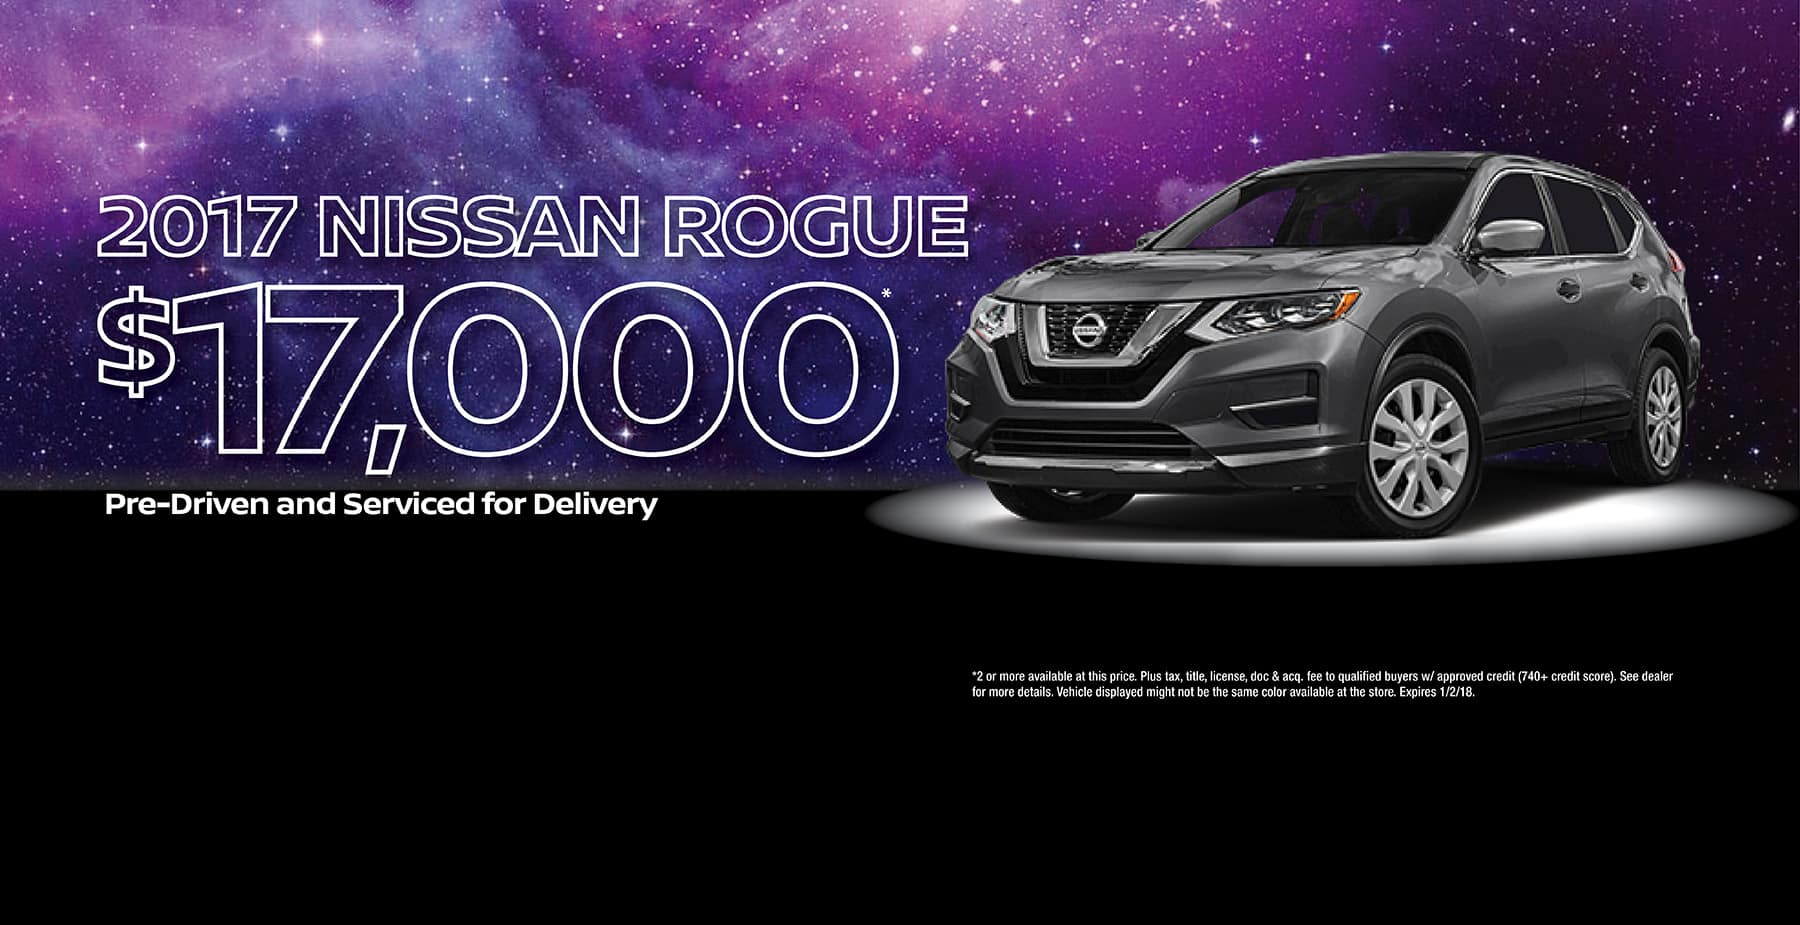 Star Nissan December Holiday Sale 2017 Nissan Rogue for $17,000!